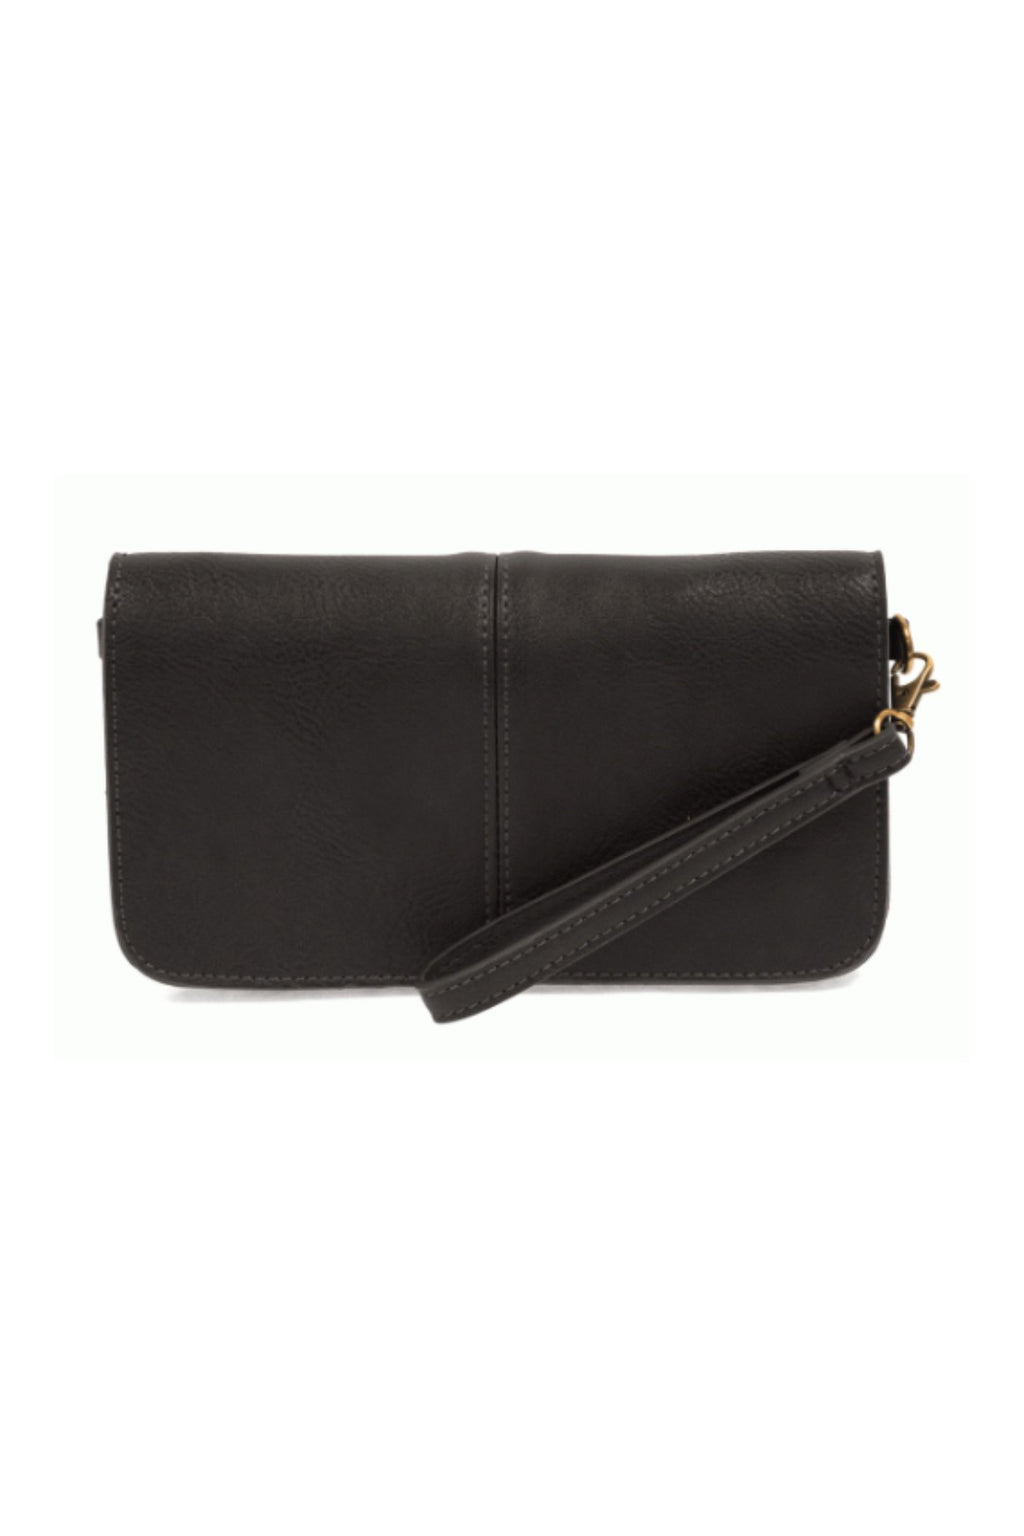 Joy Susan Mia Multi Pocket Crossbody - Black